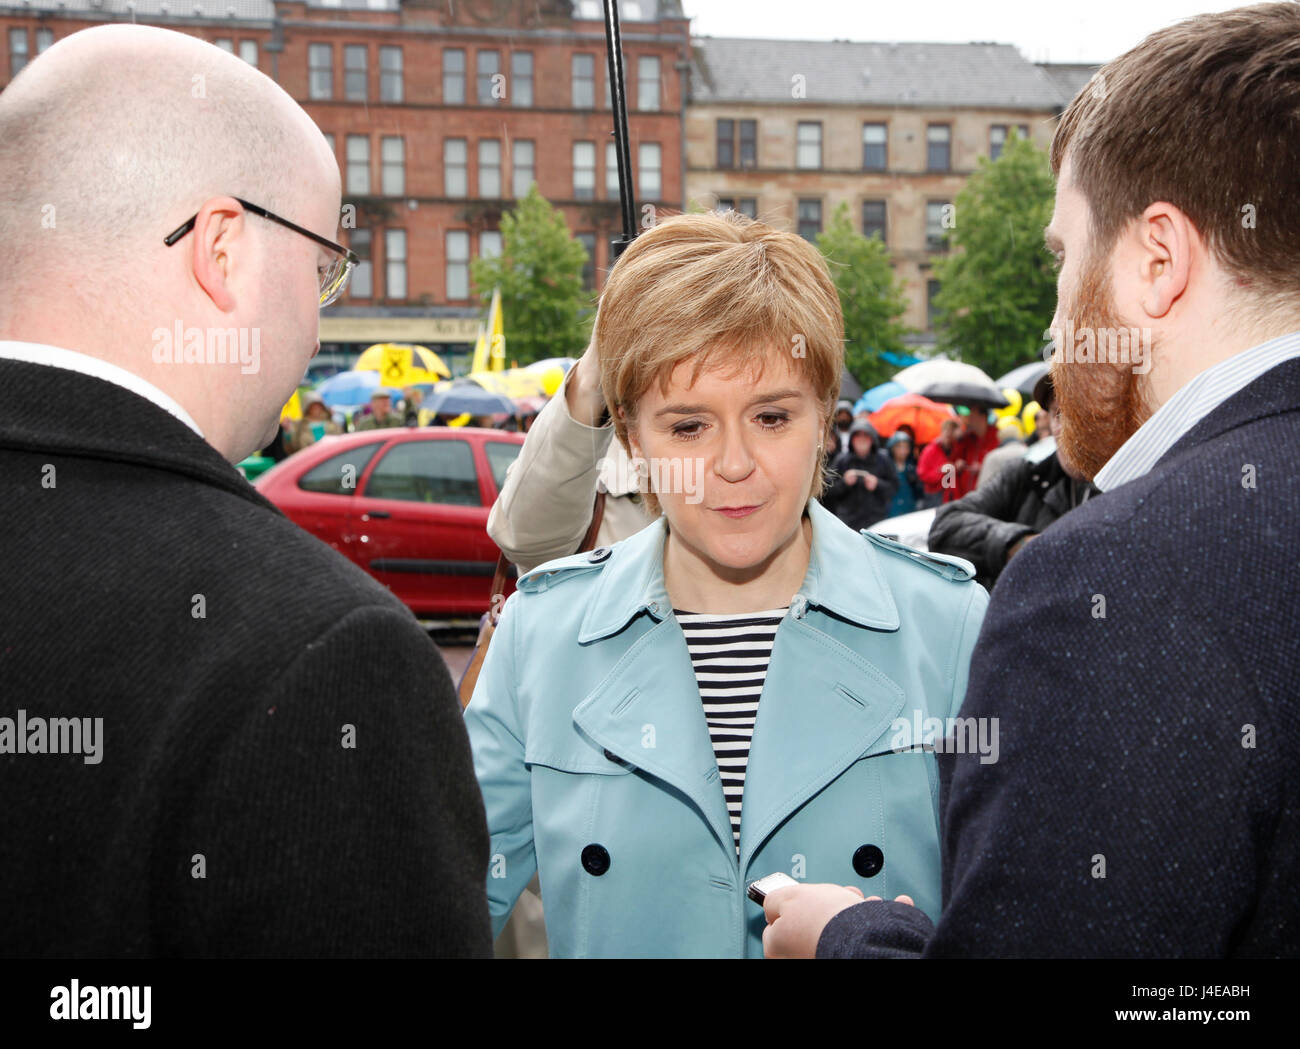 Patrick Glasgow 13 May 2017. First Minister Nicola Sturgeon campaigning in Partick Glasgow with Glasgow North Candidate - Stock Image